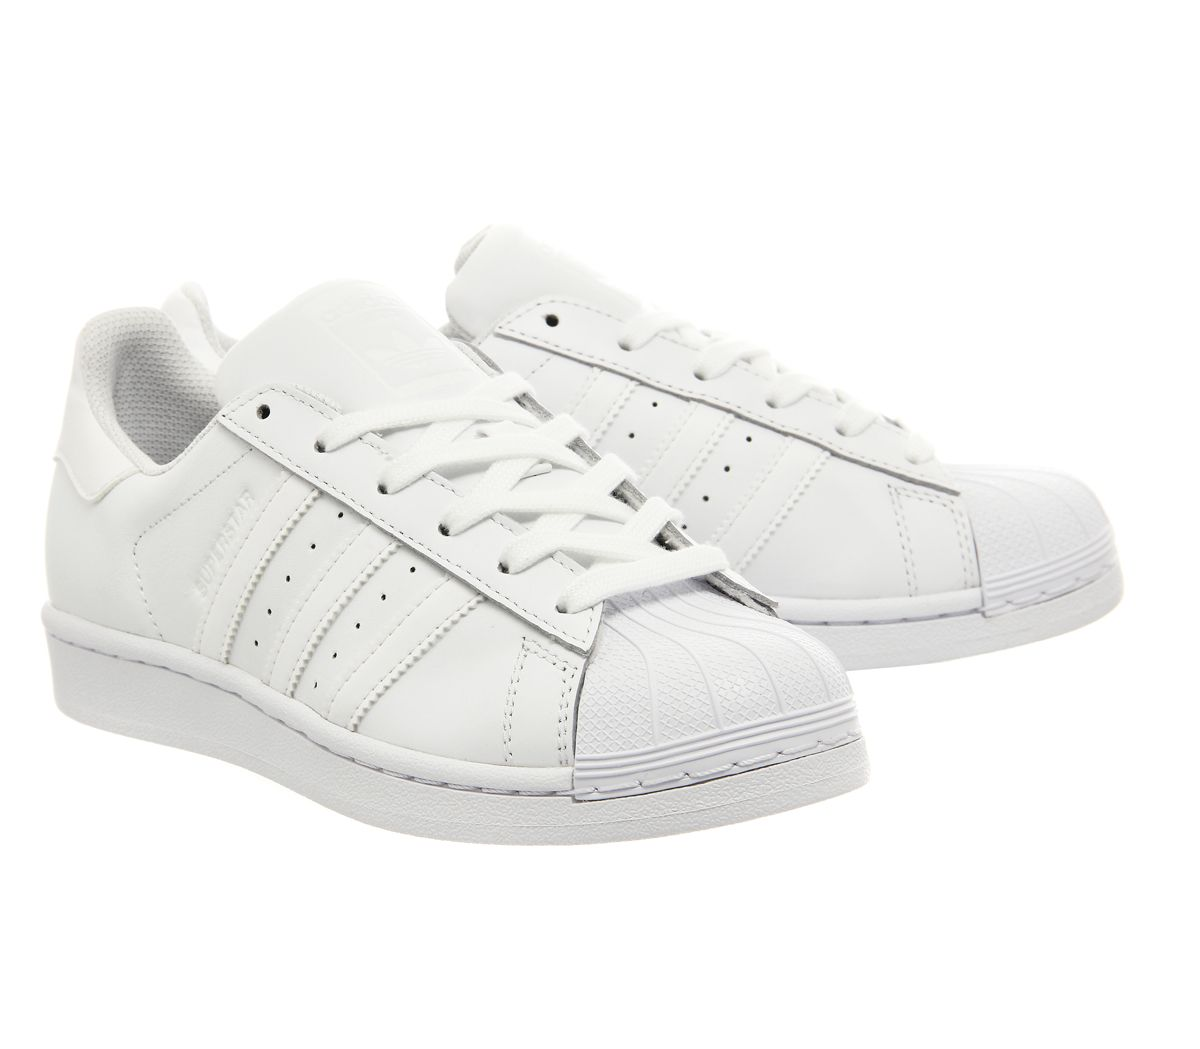 on sale 6172f 55405 Sentinel Mens Adidas Superstar 1 White Mono Foundation Trainers Shoes